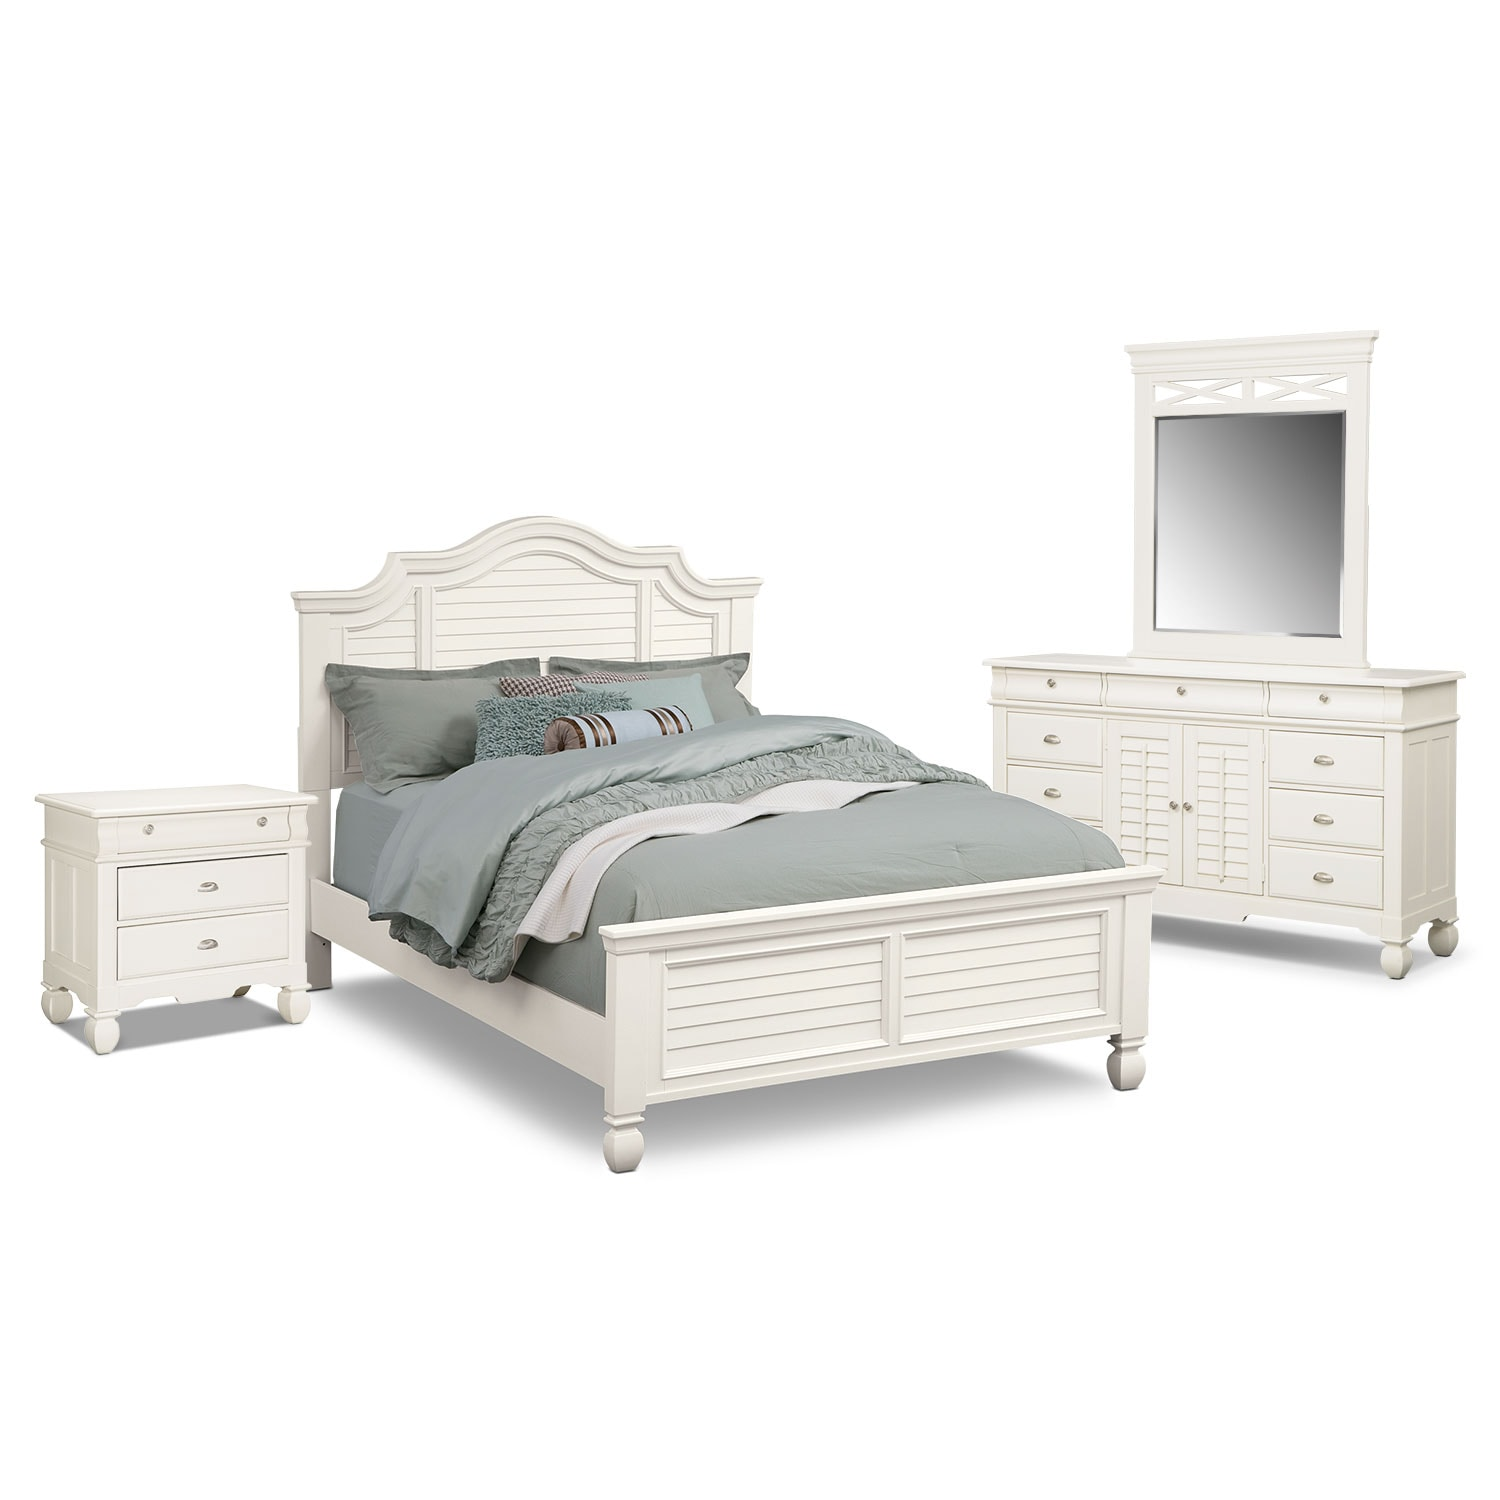 Plantation Cove 6-Piece King Panel Bedroom Set - White